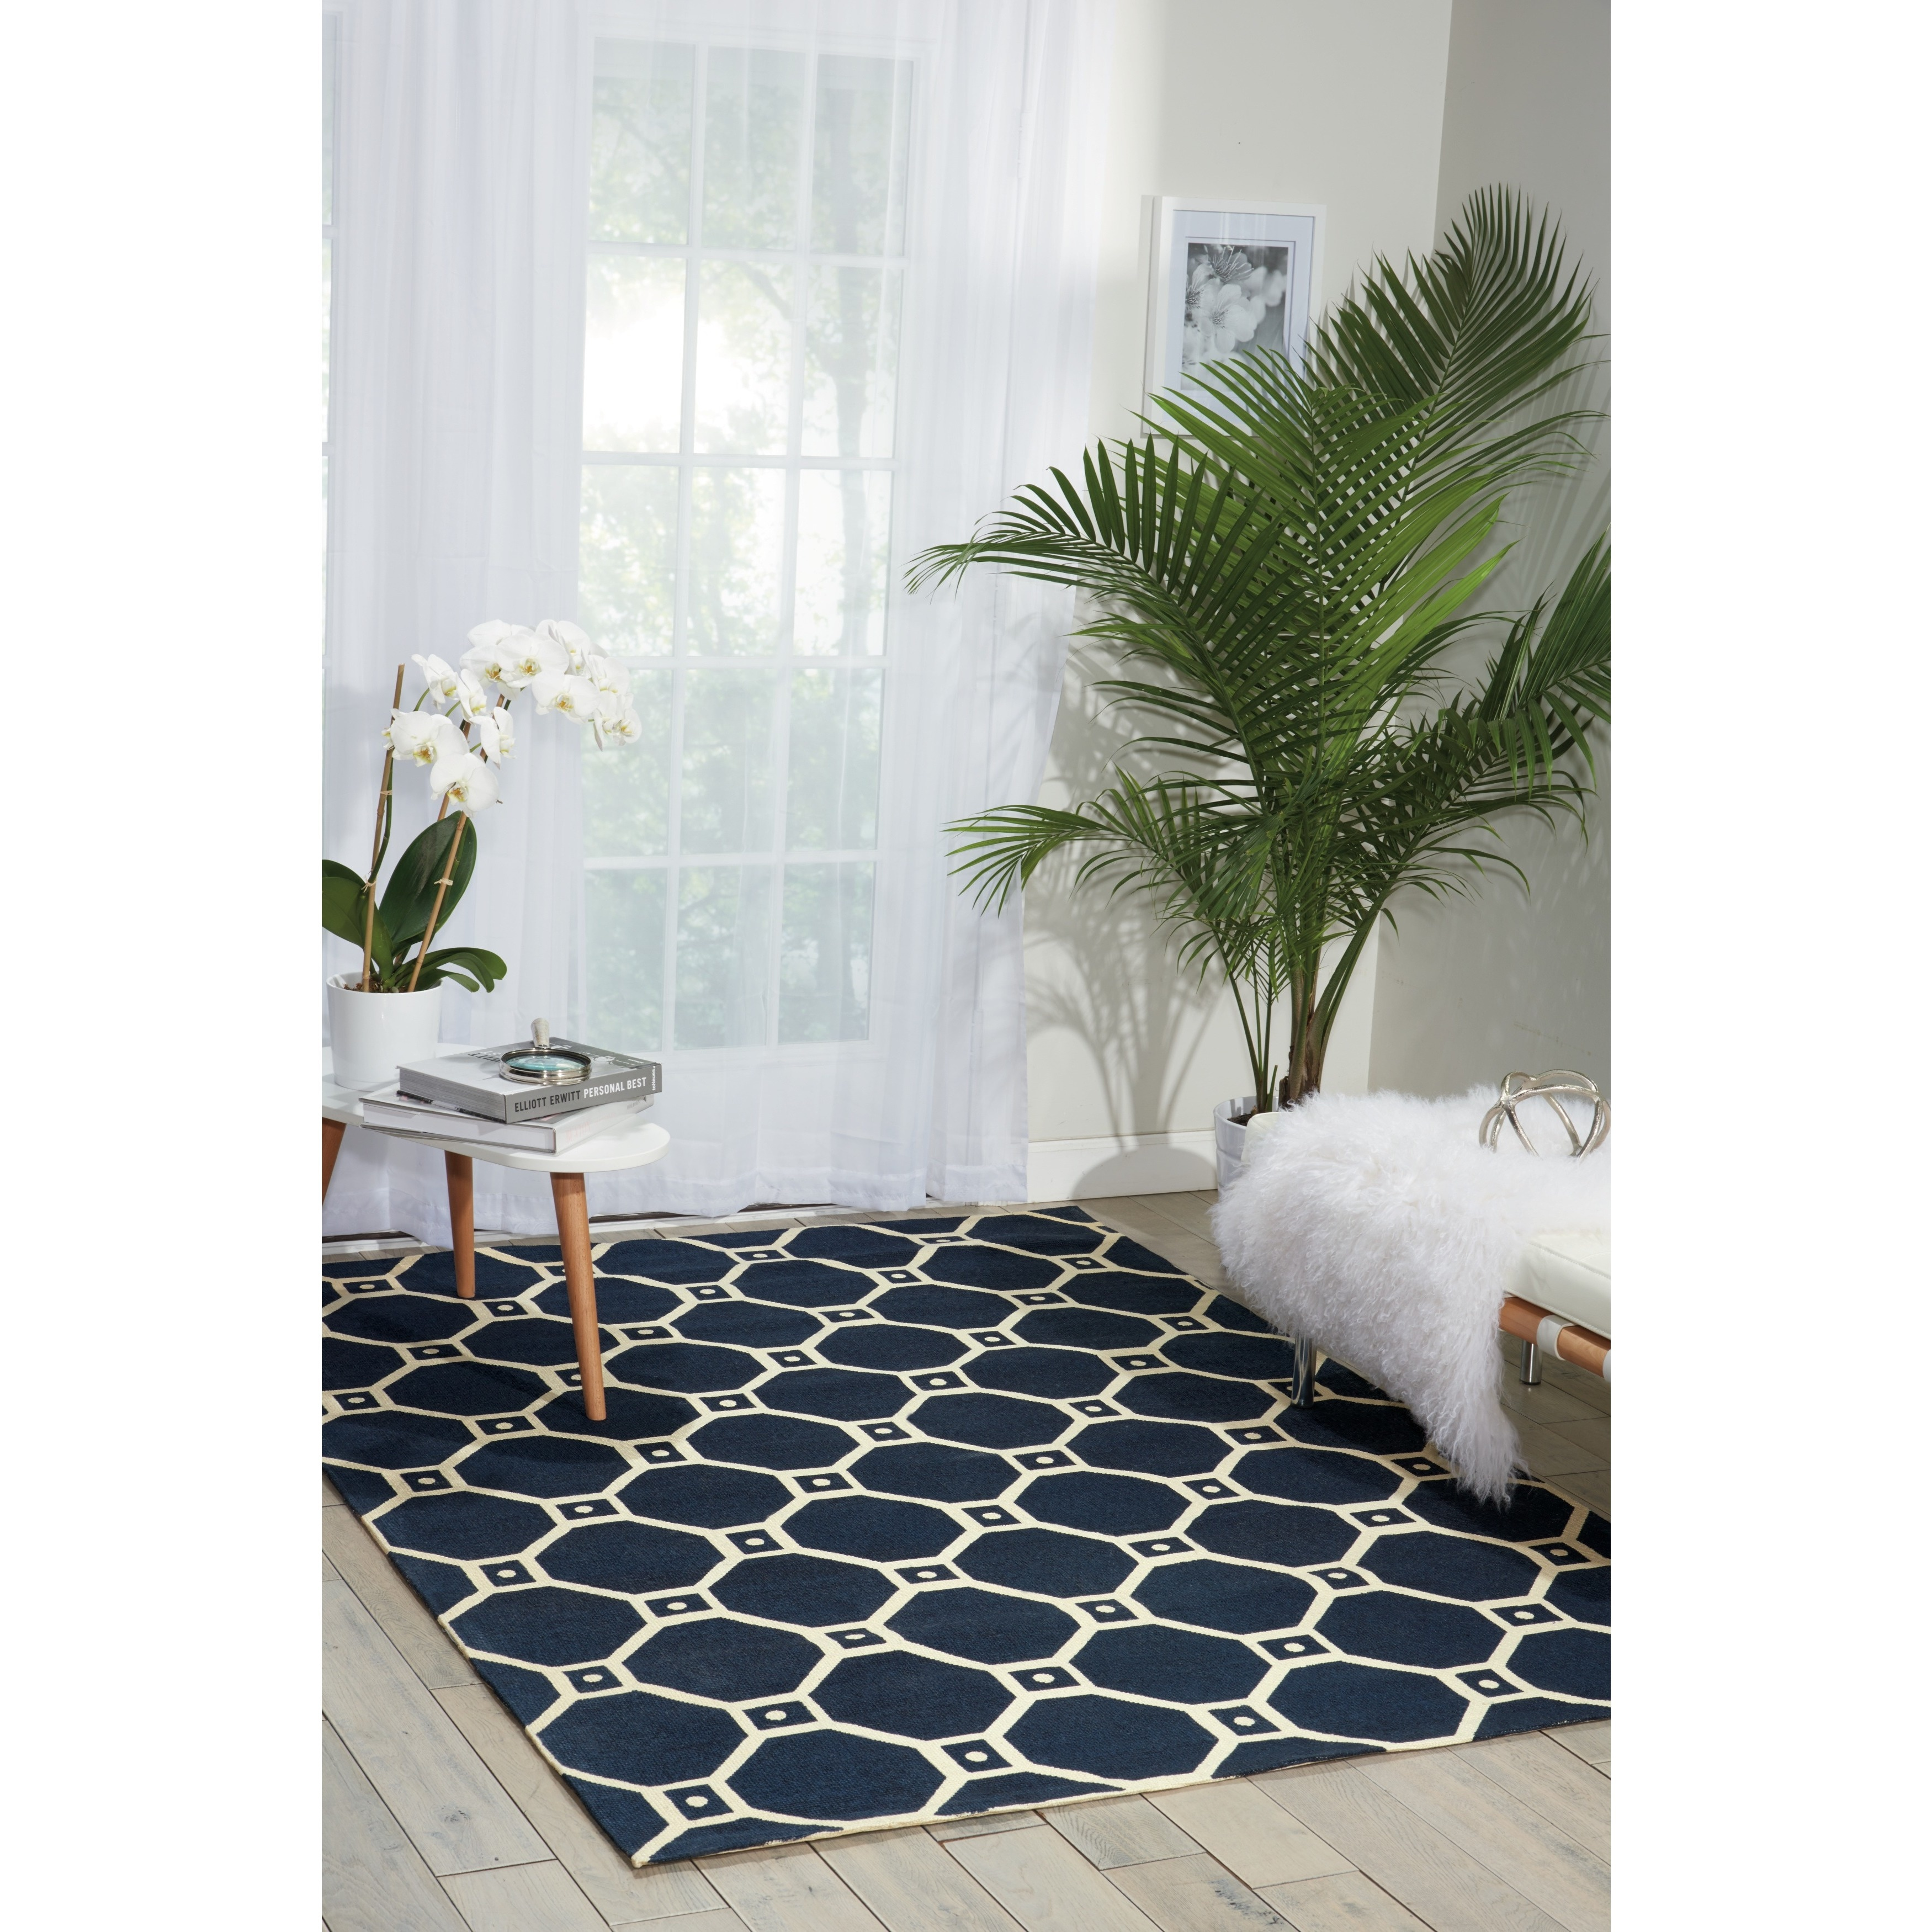 Waverly Color Motion Ferris Wheel Navy (Blue) Area Rug by...